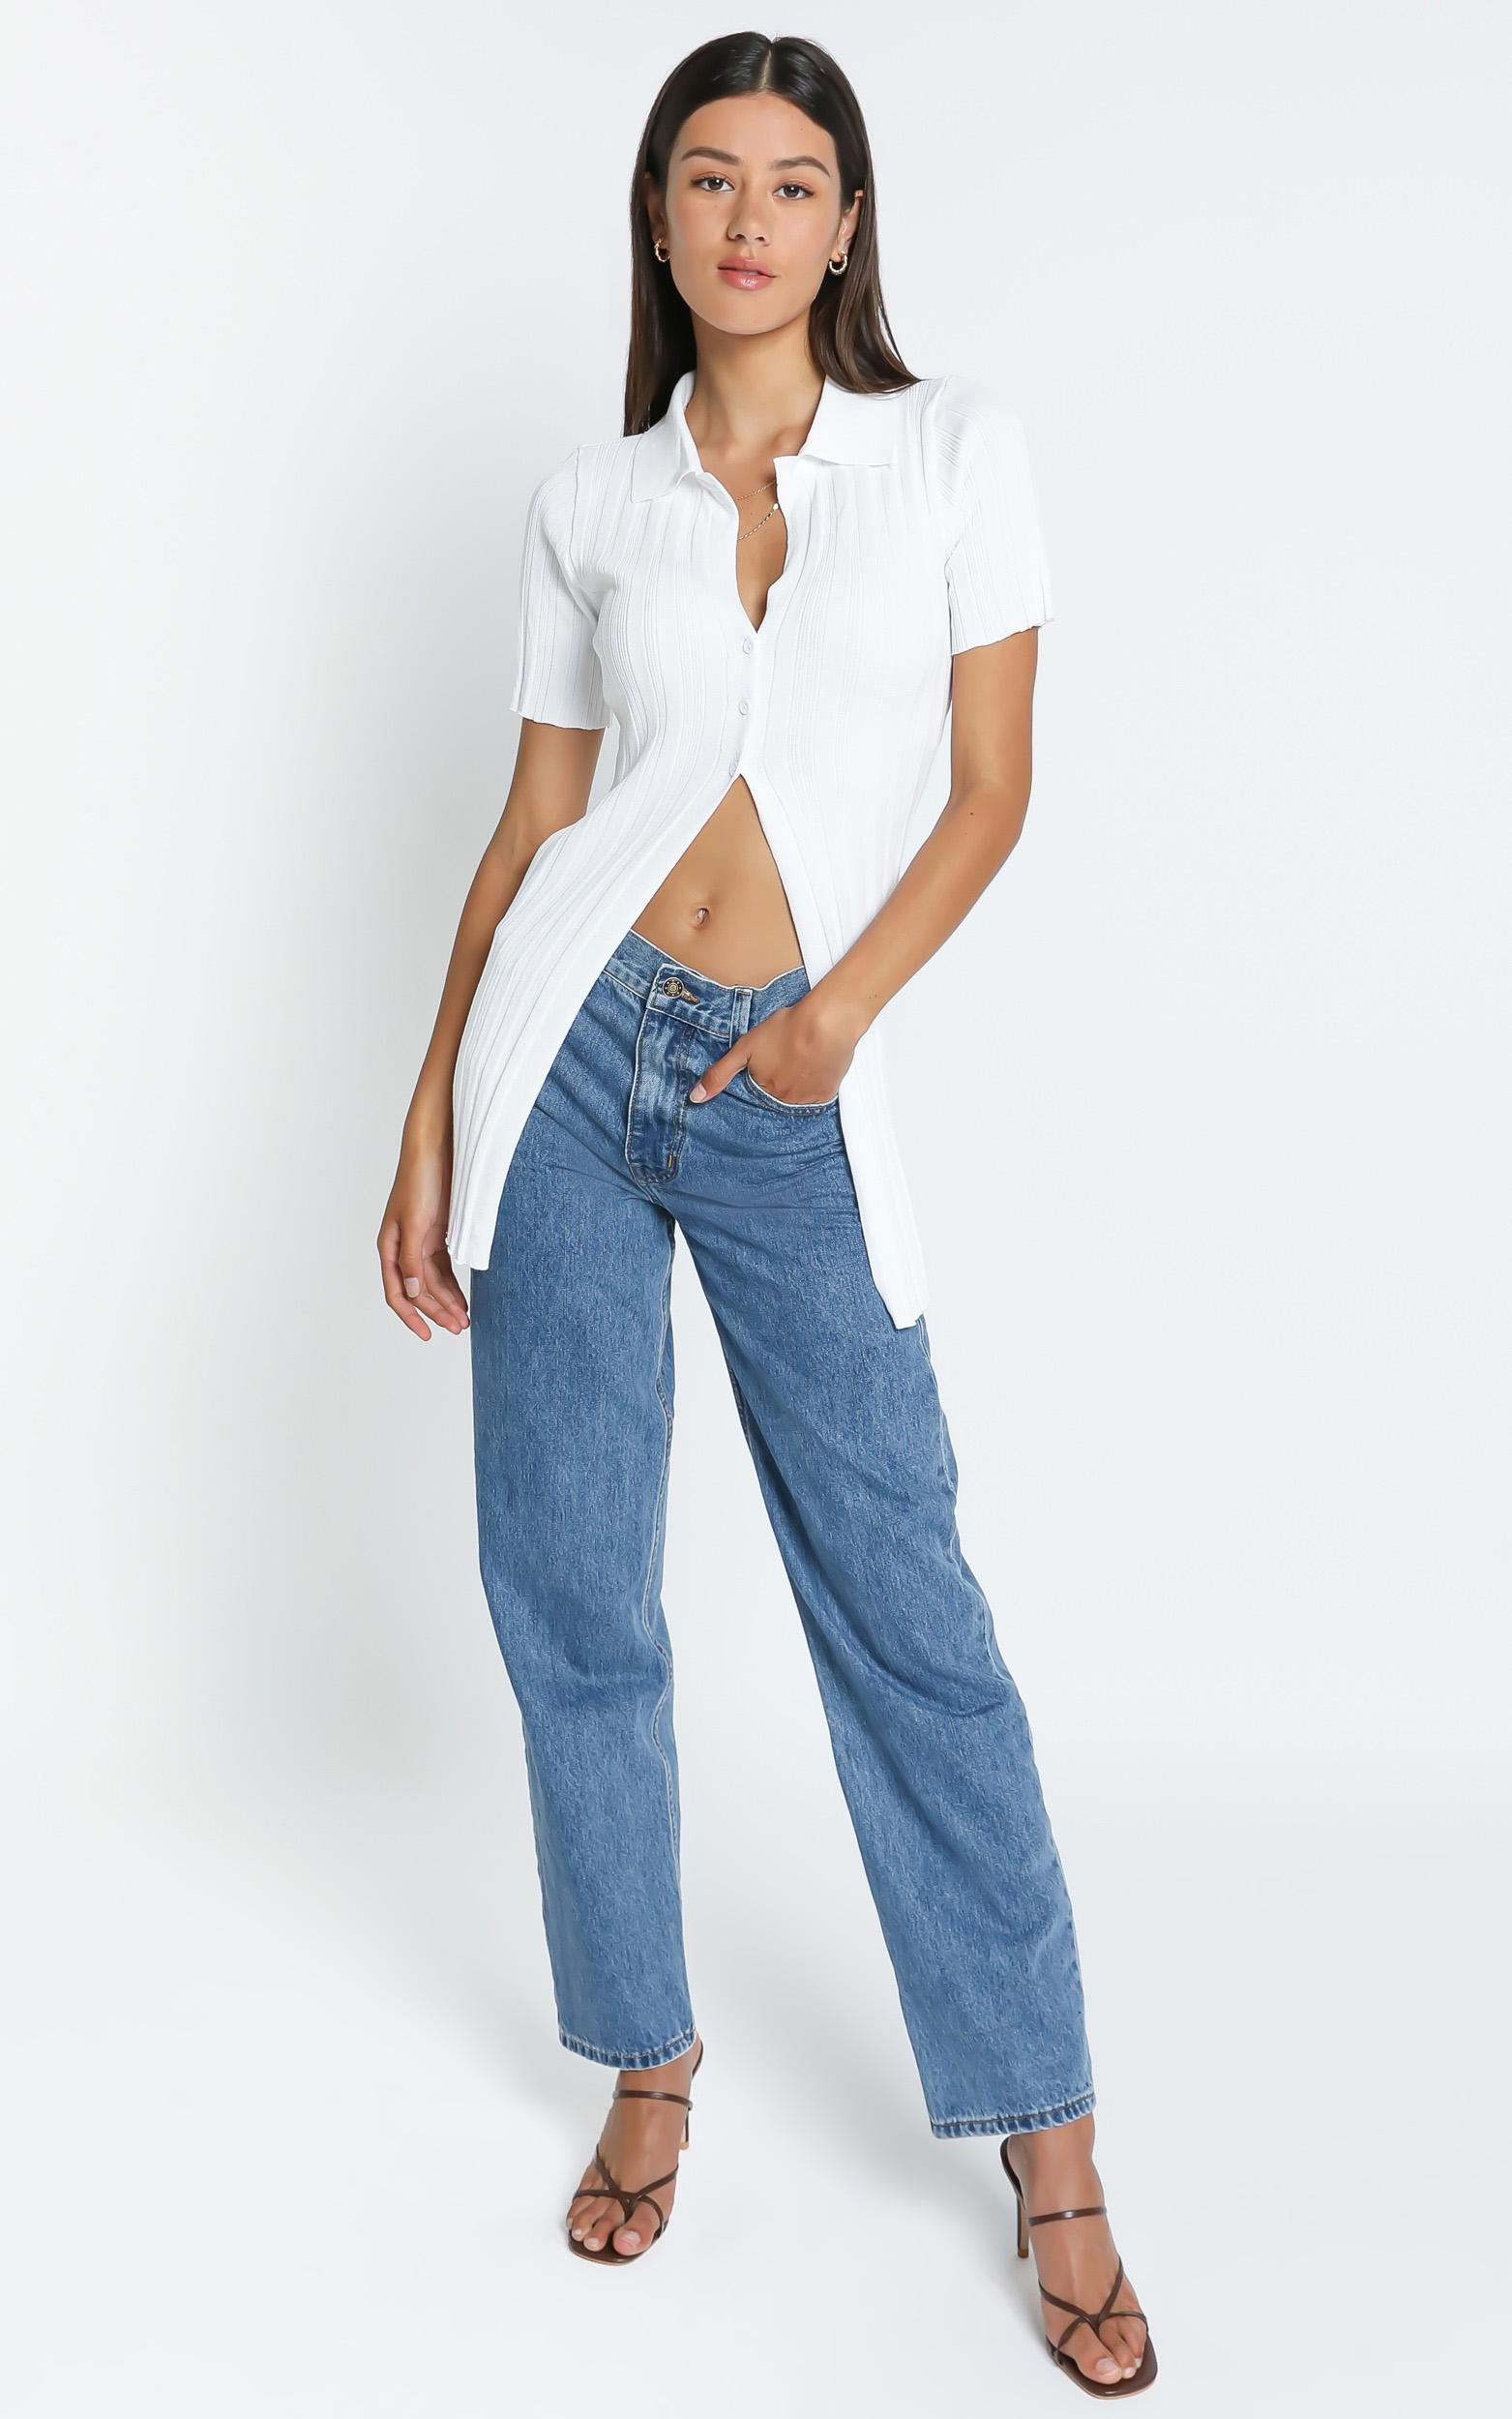 Lioness - Silverlake Cardi Top in White - 4 (XXS), WHT1, hi-res image number null